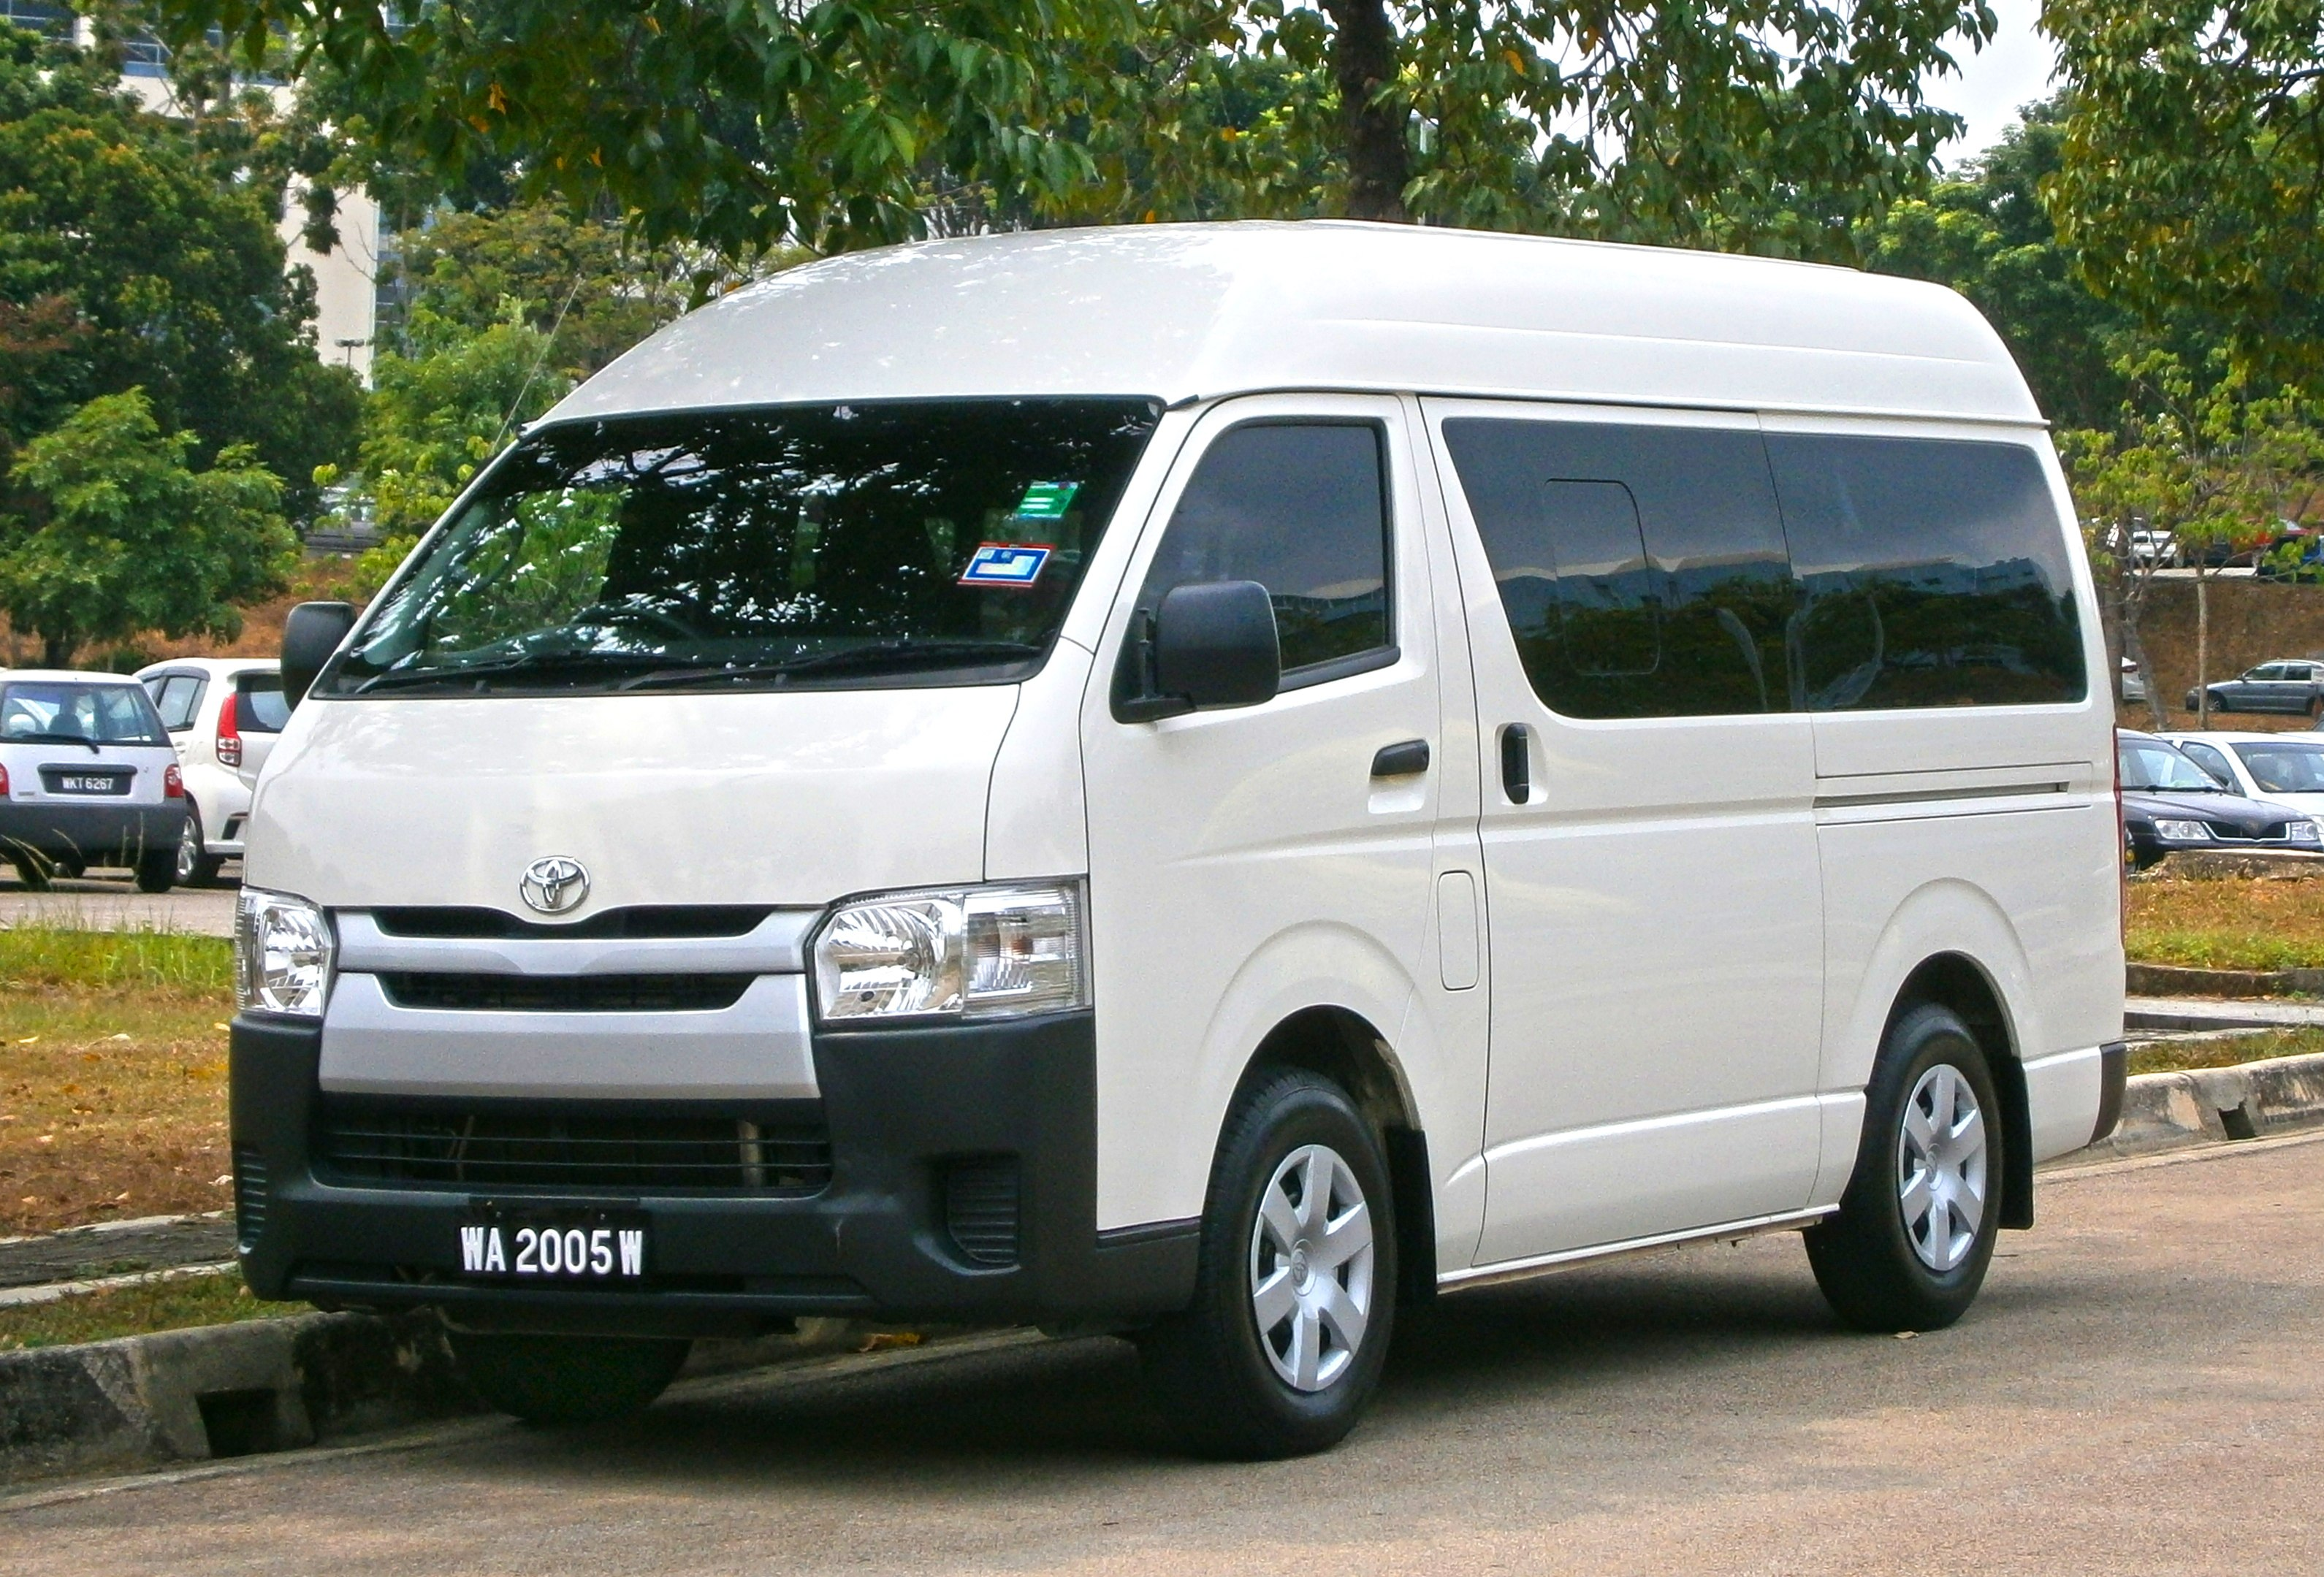 ece60d3c94 Toyota HiAce - The complete information and online sale with free shipping.  Order and buy now for the lowest price in the best online store!